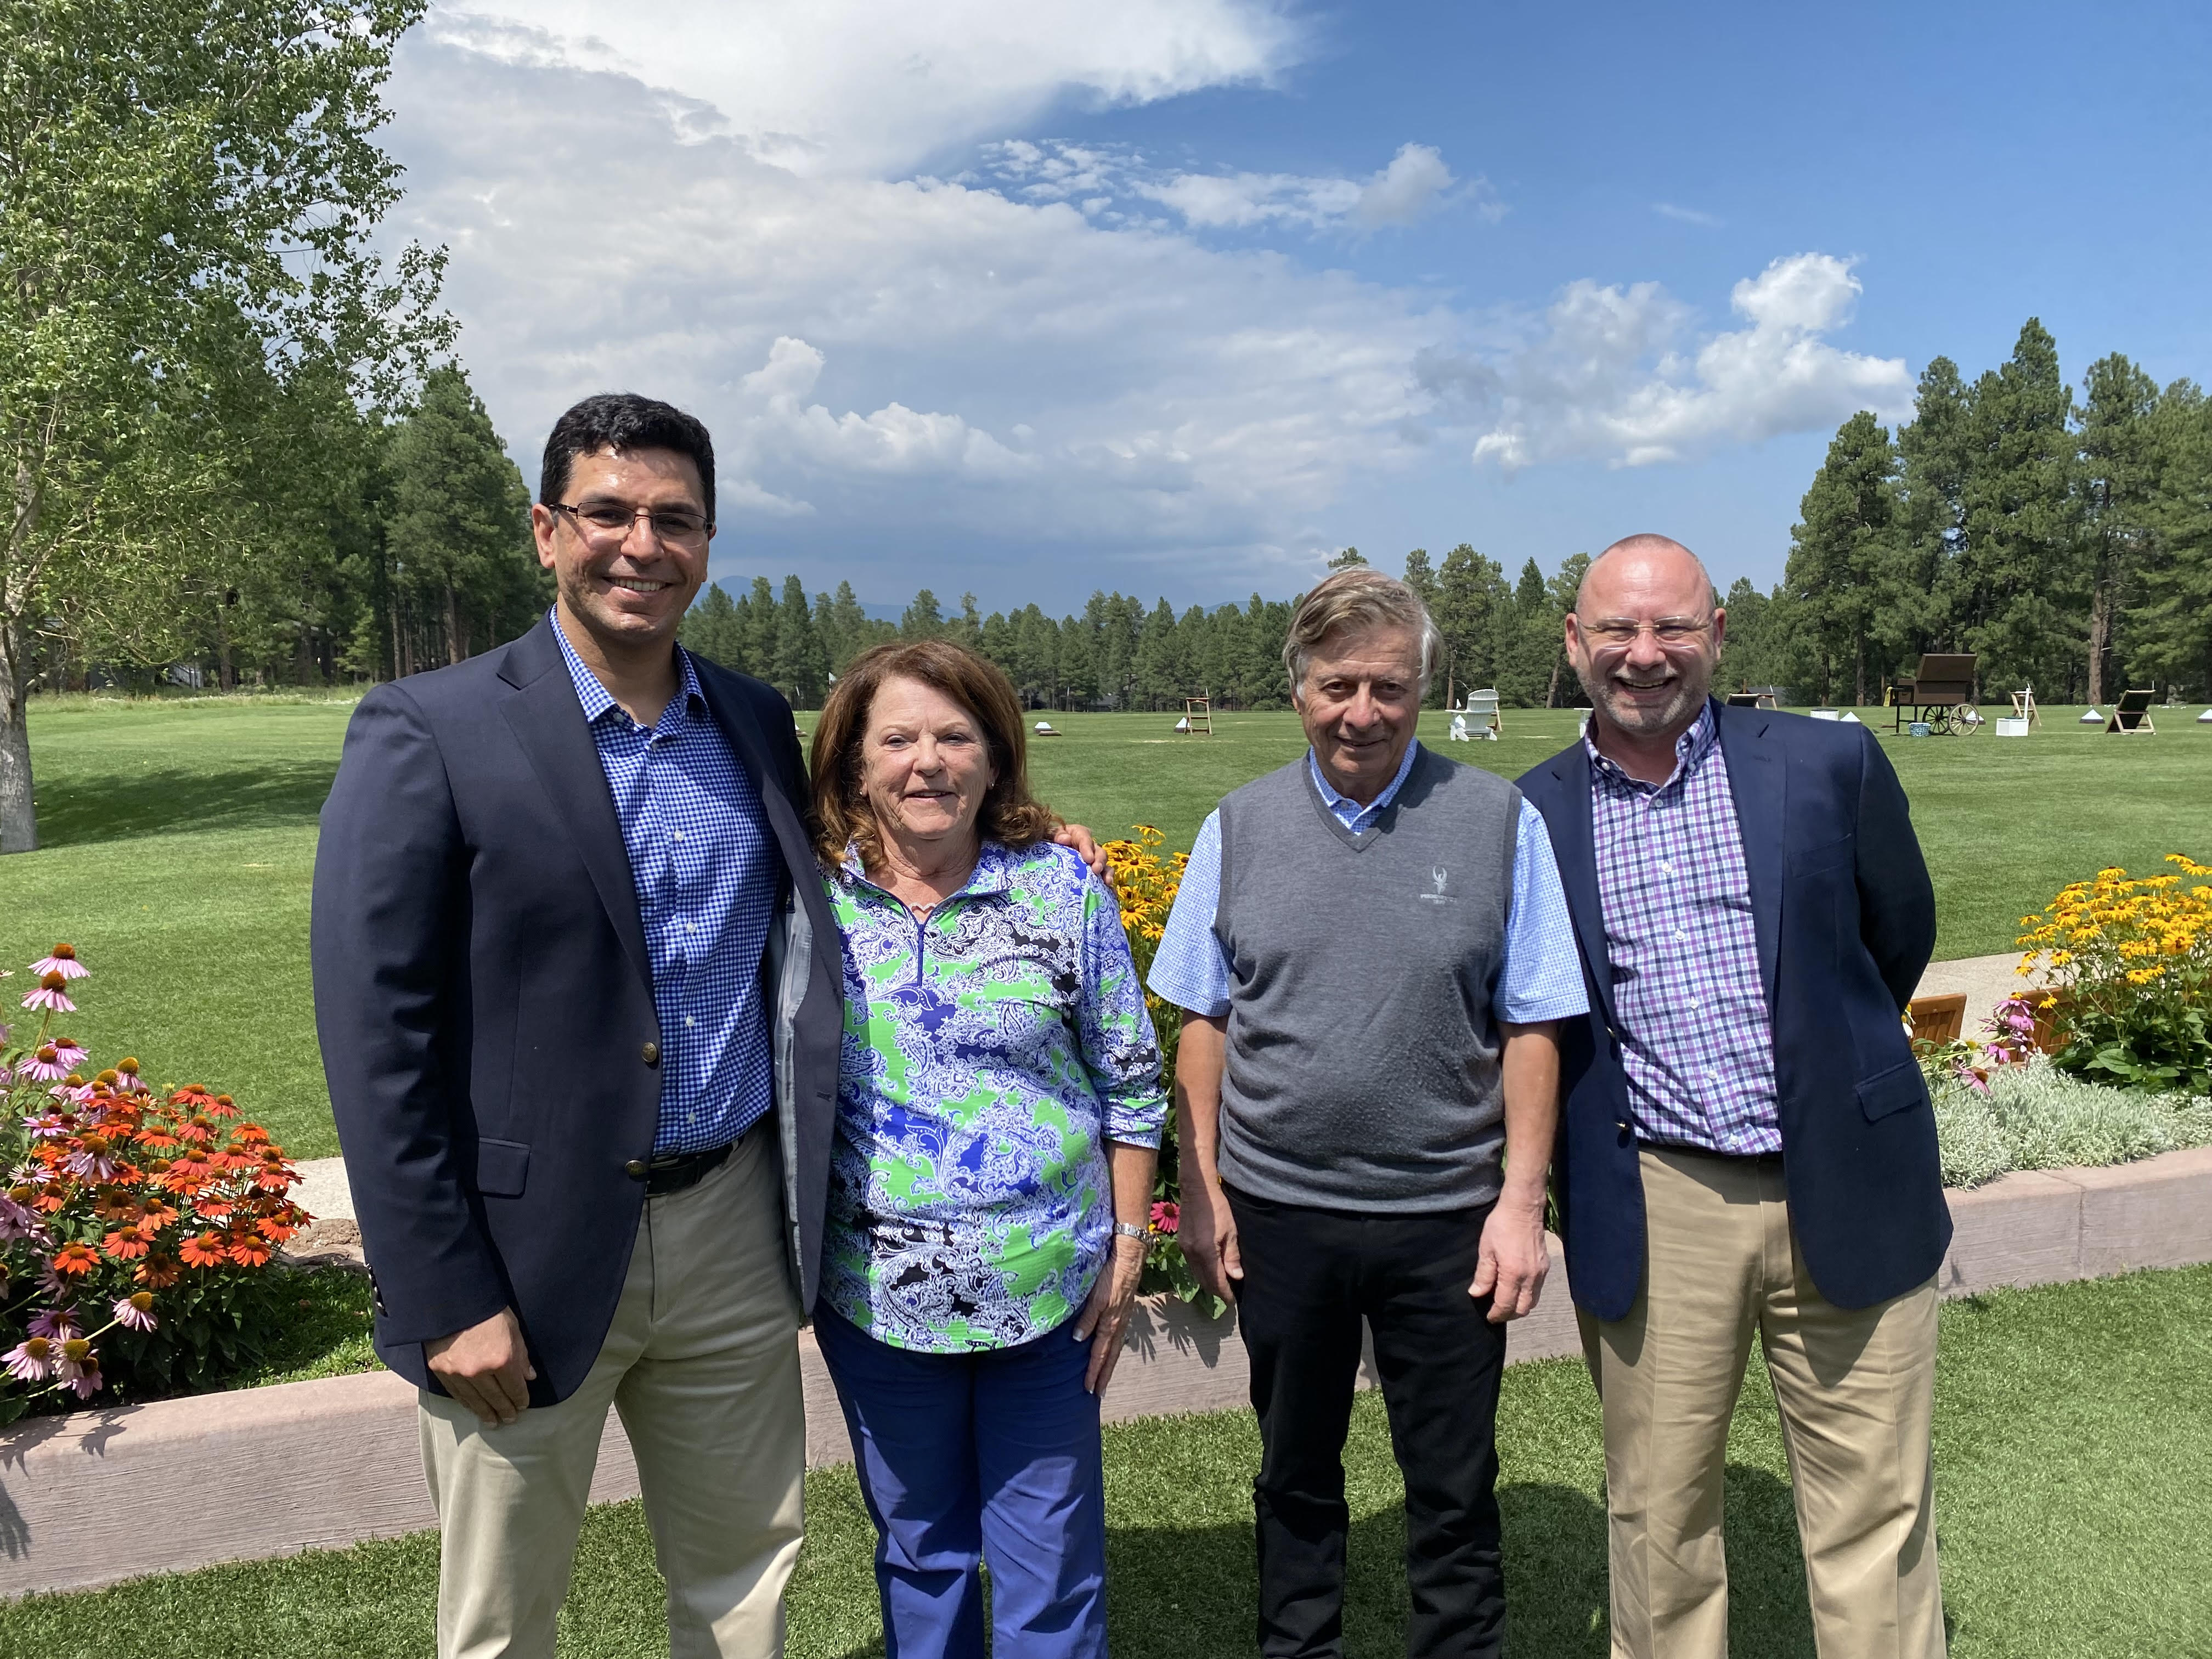 Drs. Saeed and Zgoda with Susan and Art Miele